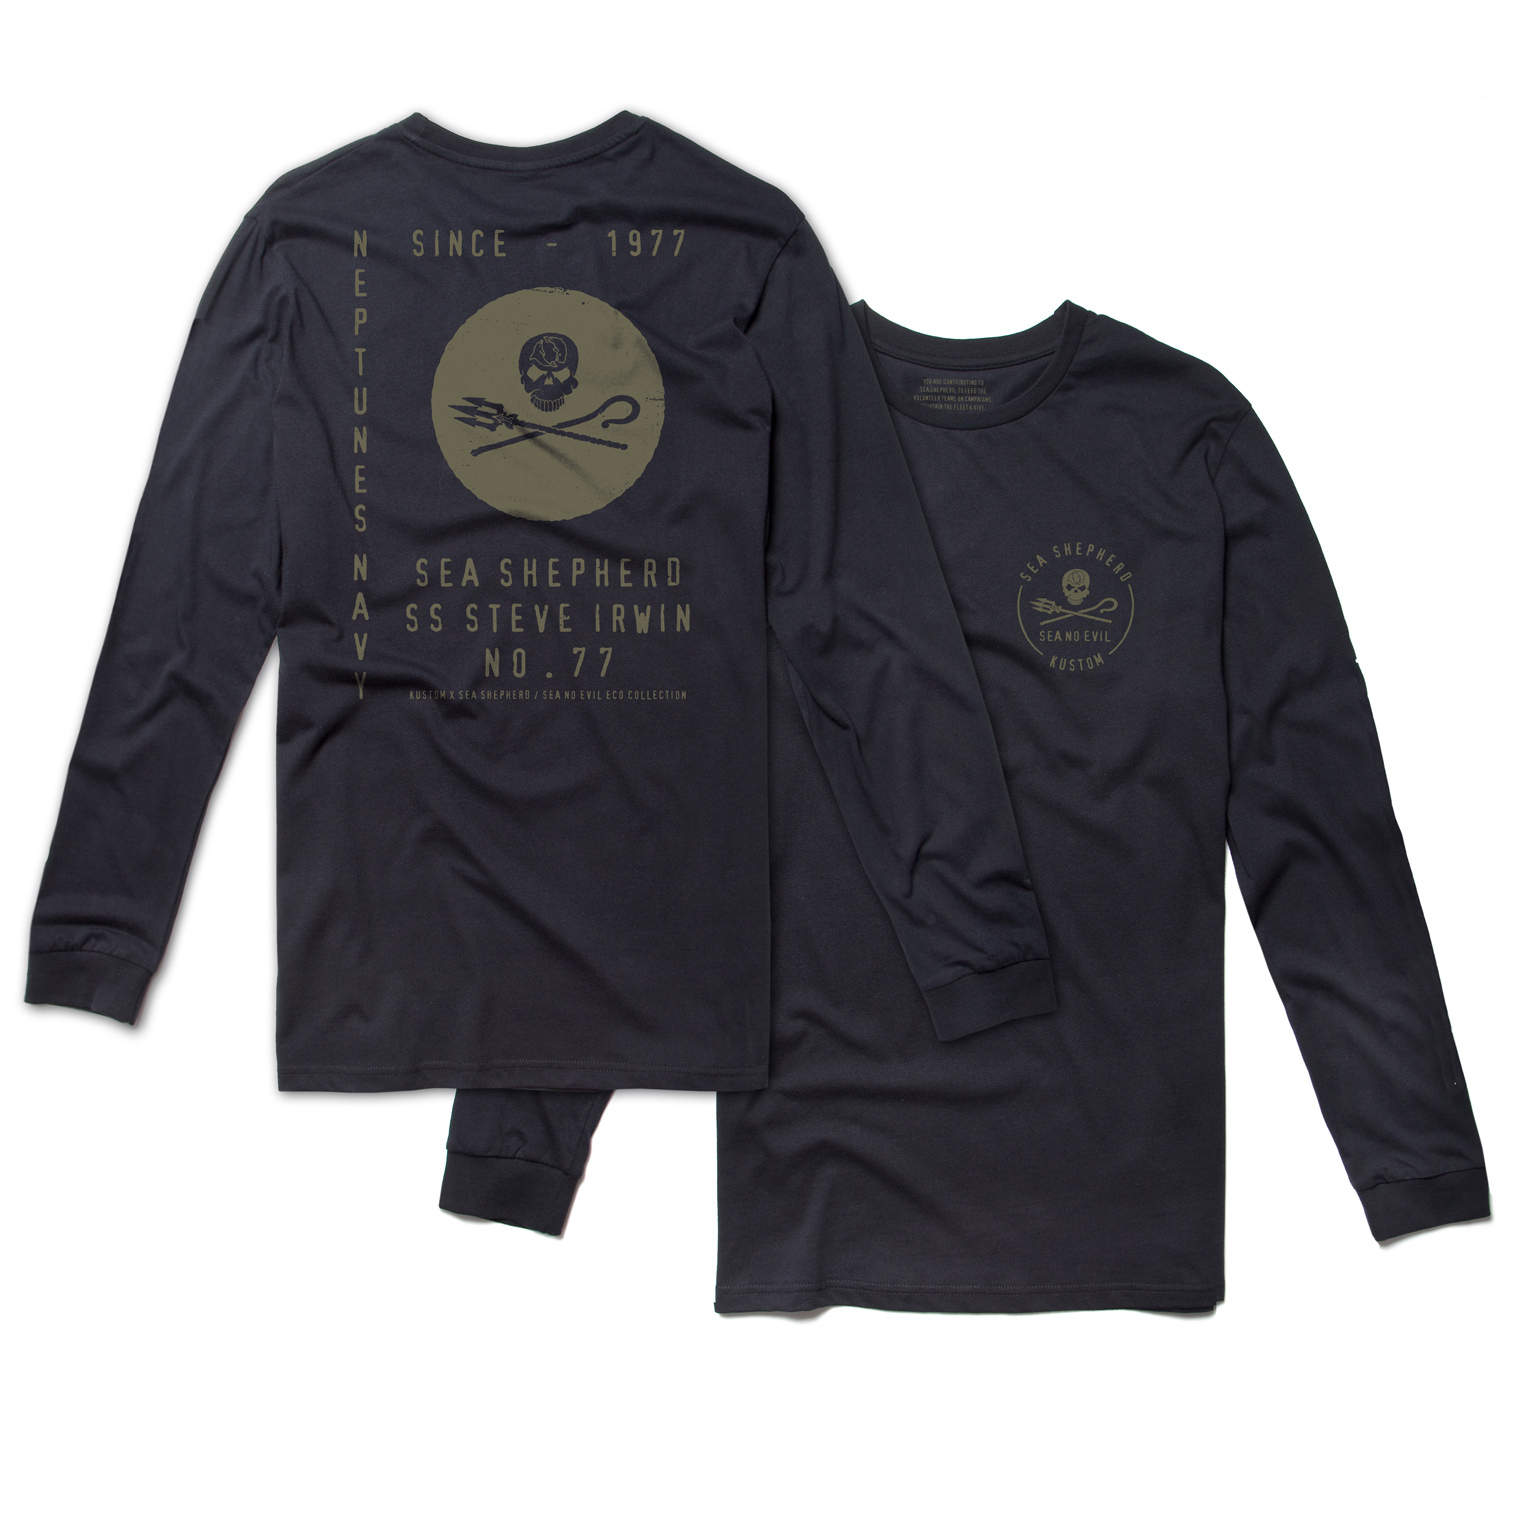 KUSTOM CLOTHING & ACCESSORIES SS NEPTUNES NAVY LONG SLEEVE T-SHIRT